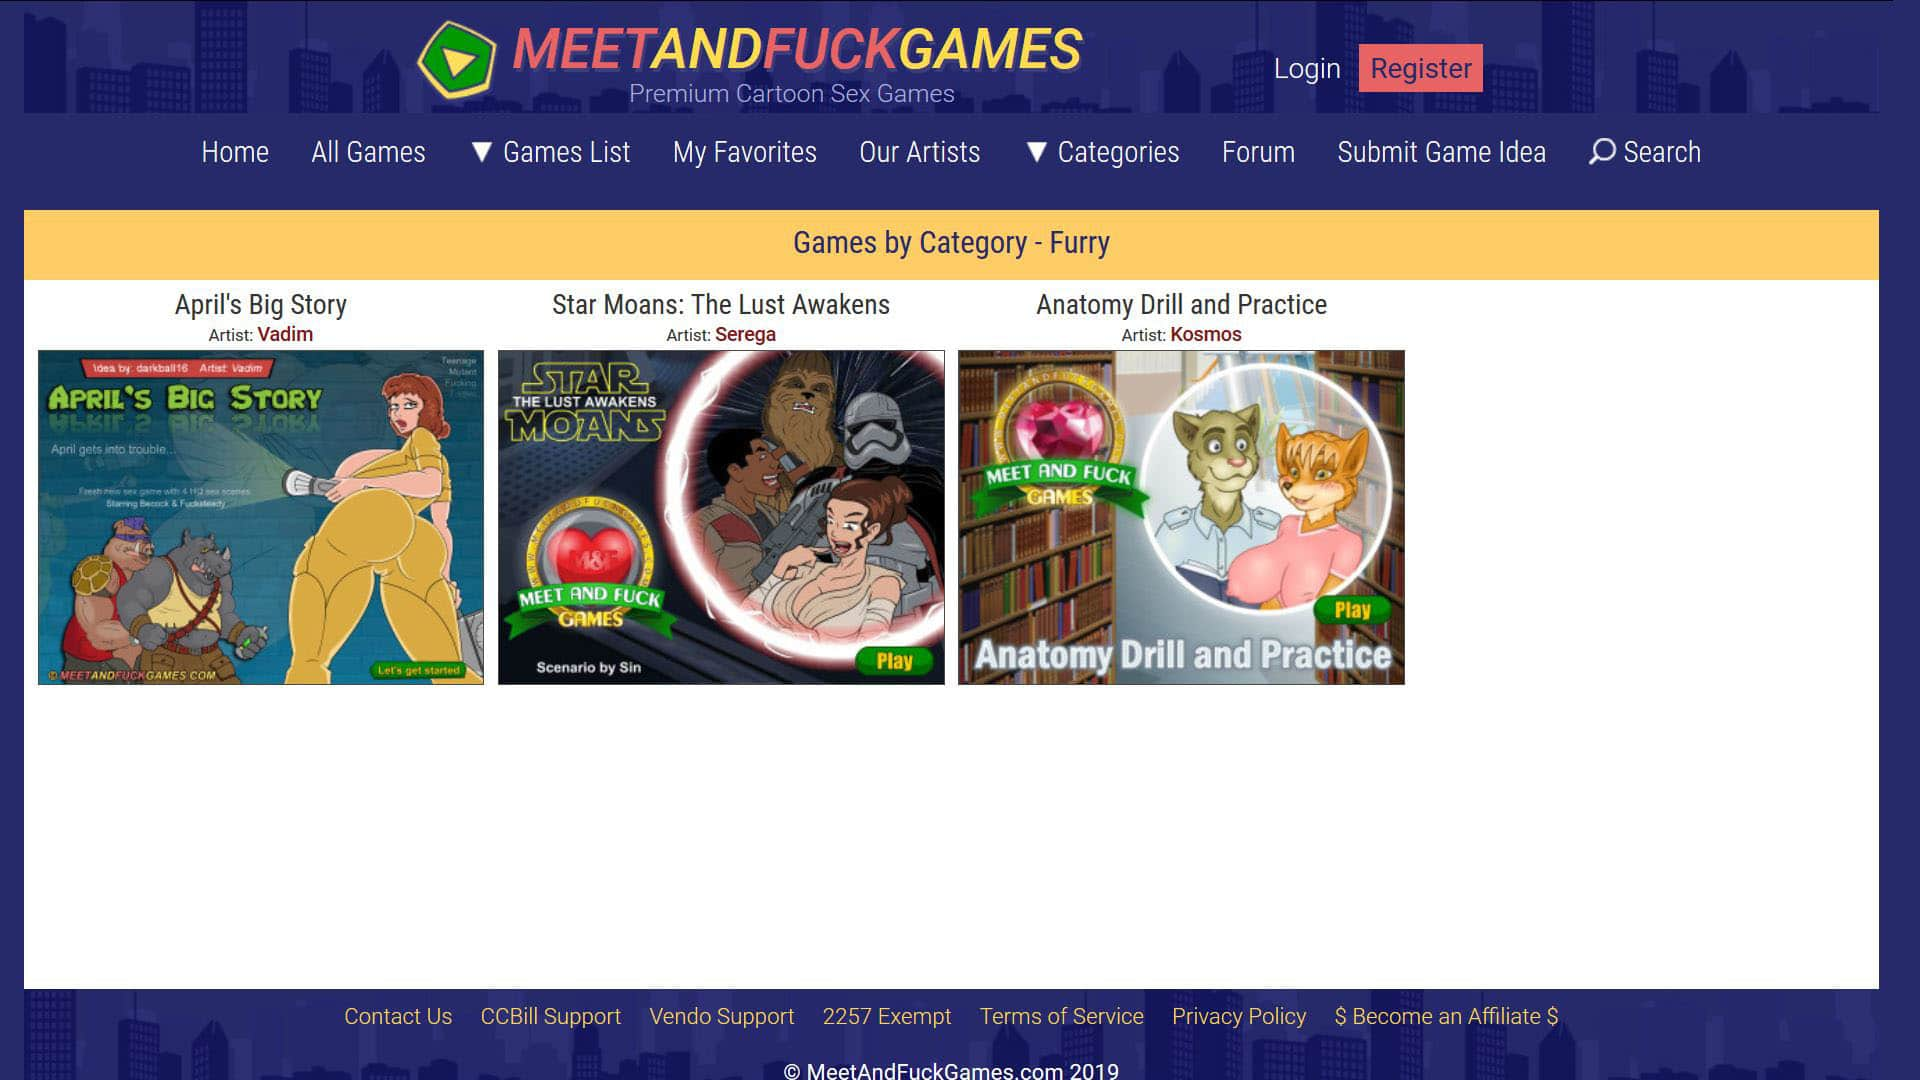 Meet And Fuck Games Category - Furry